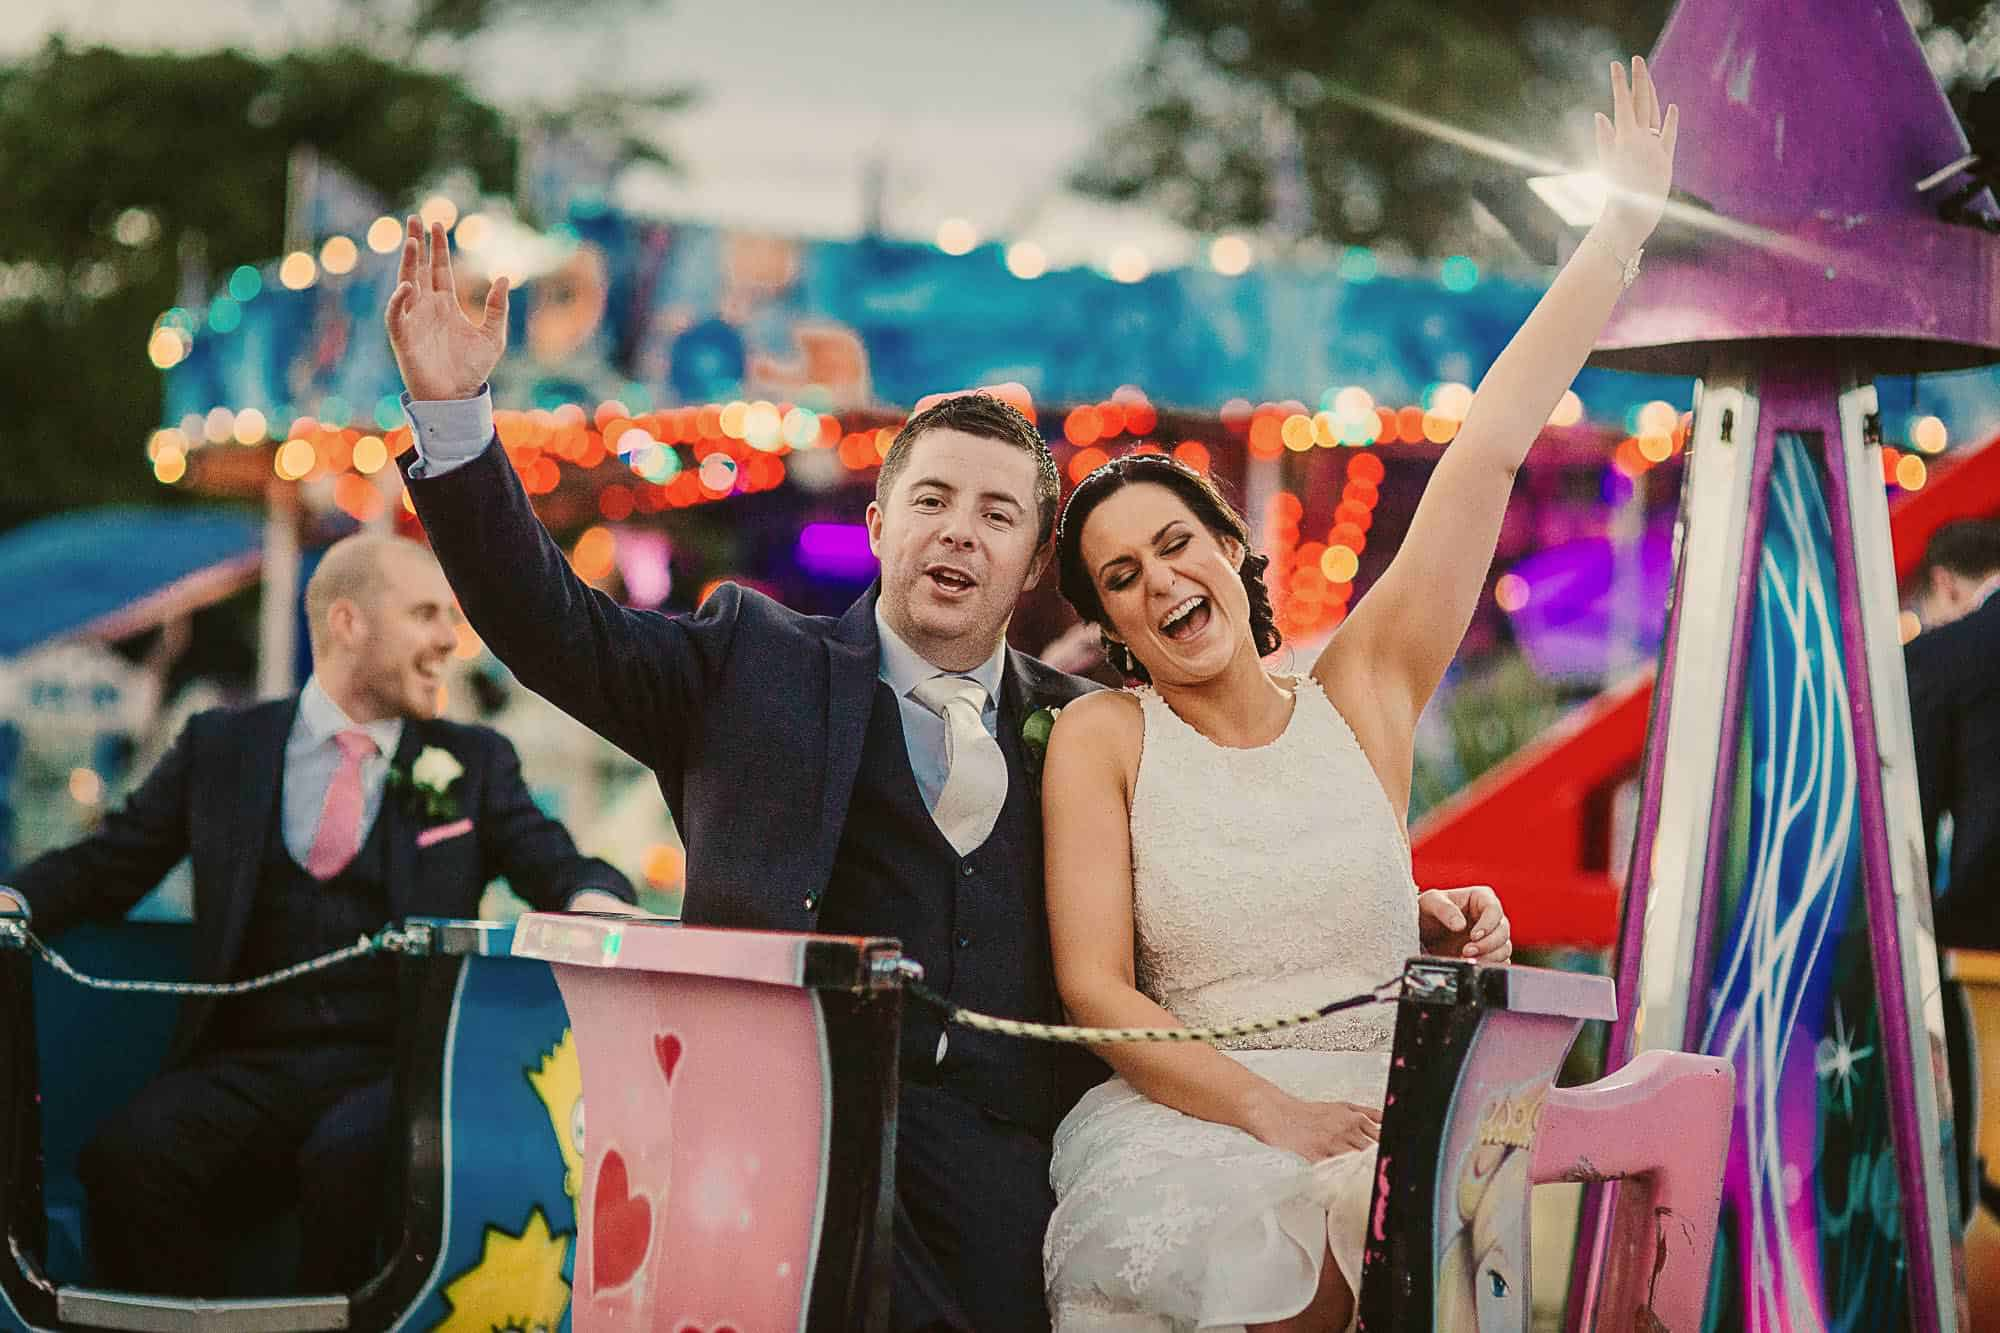 Galway City Elopement Fun, a couple on teacups at a fair ground on their Destination Wedding in Ireland